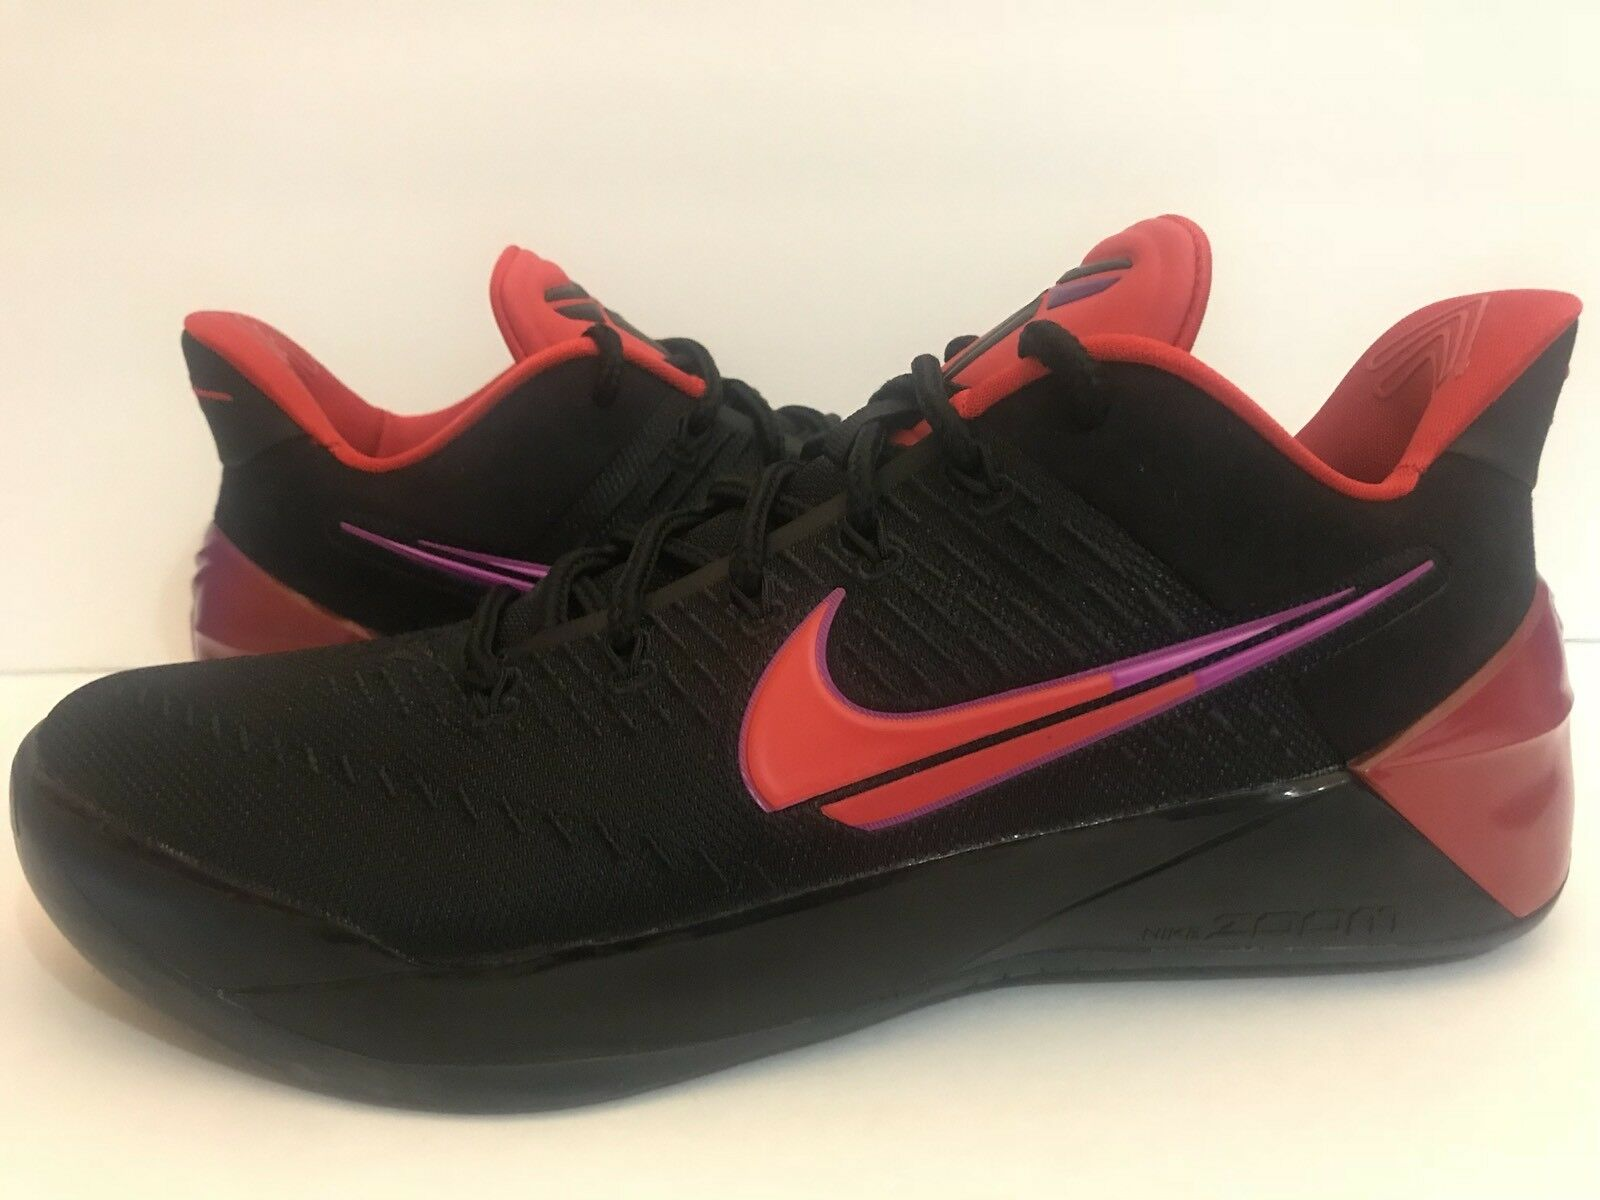 Nike Kobe A.D. Flip The Switch Black Hyper purple Red 852425-004 Sz 13 15